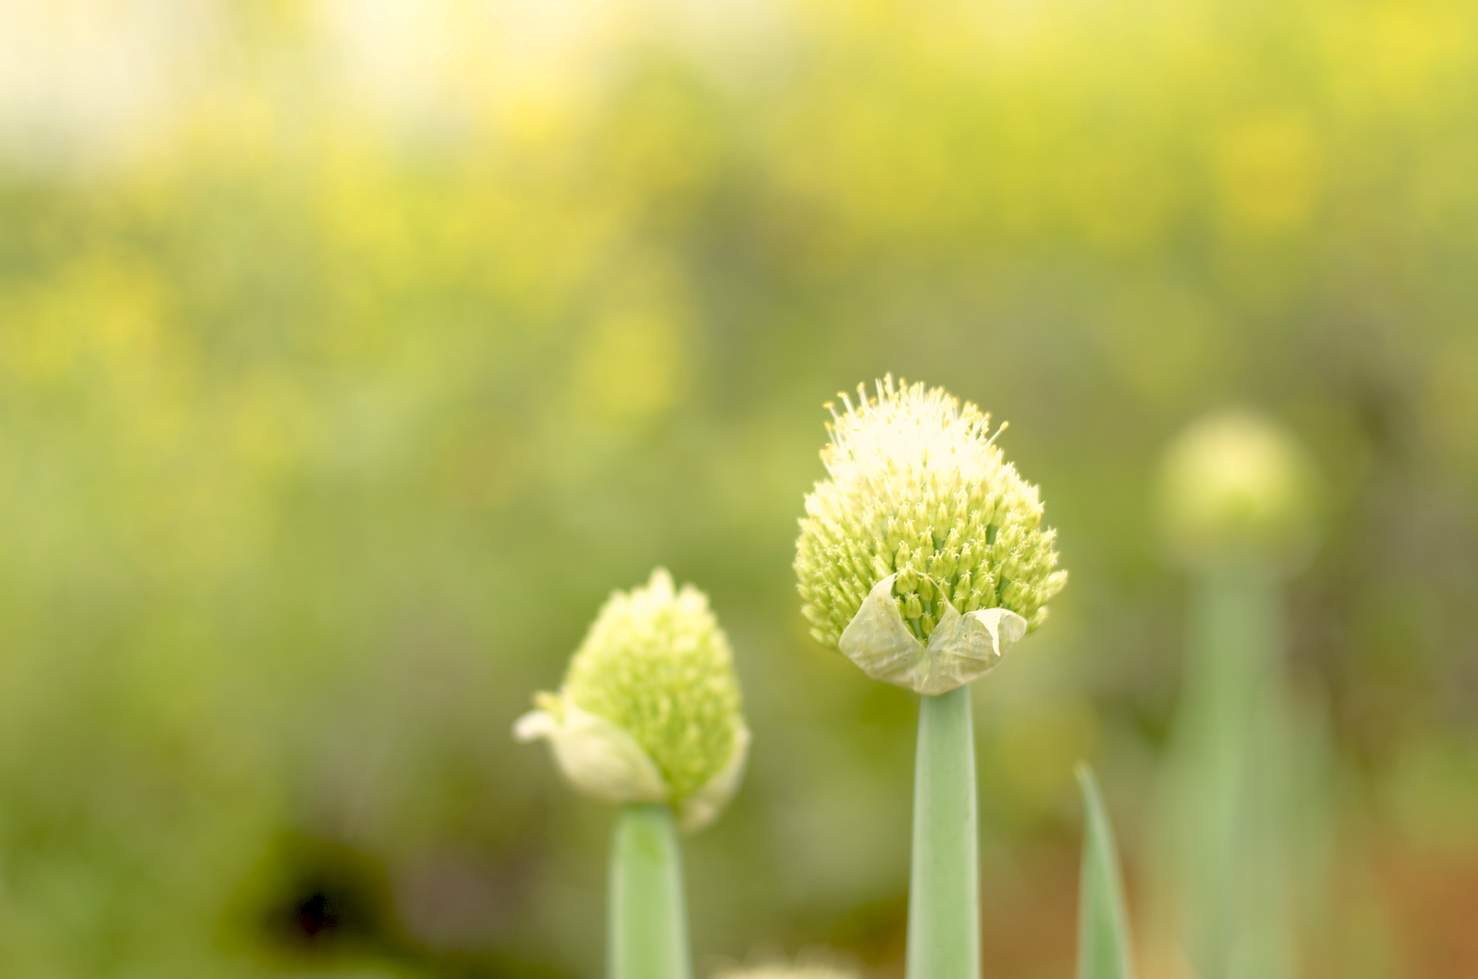 [The tips of scallions, which are holding up puffy-looking white and green flowers.]